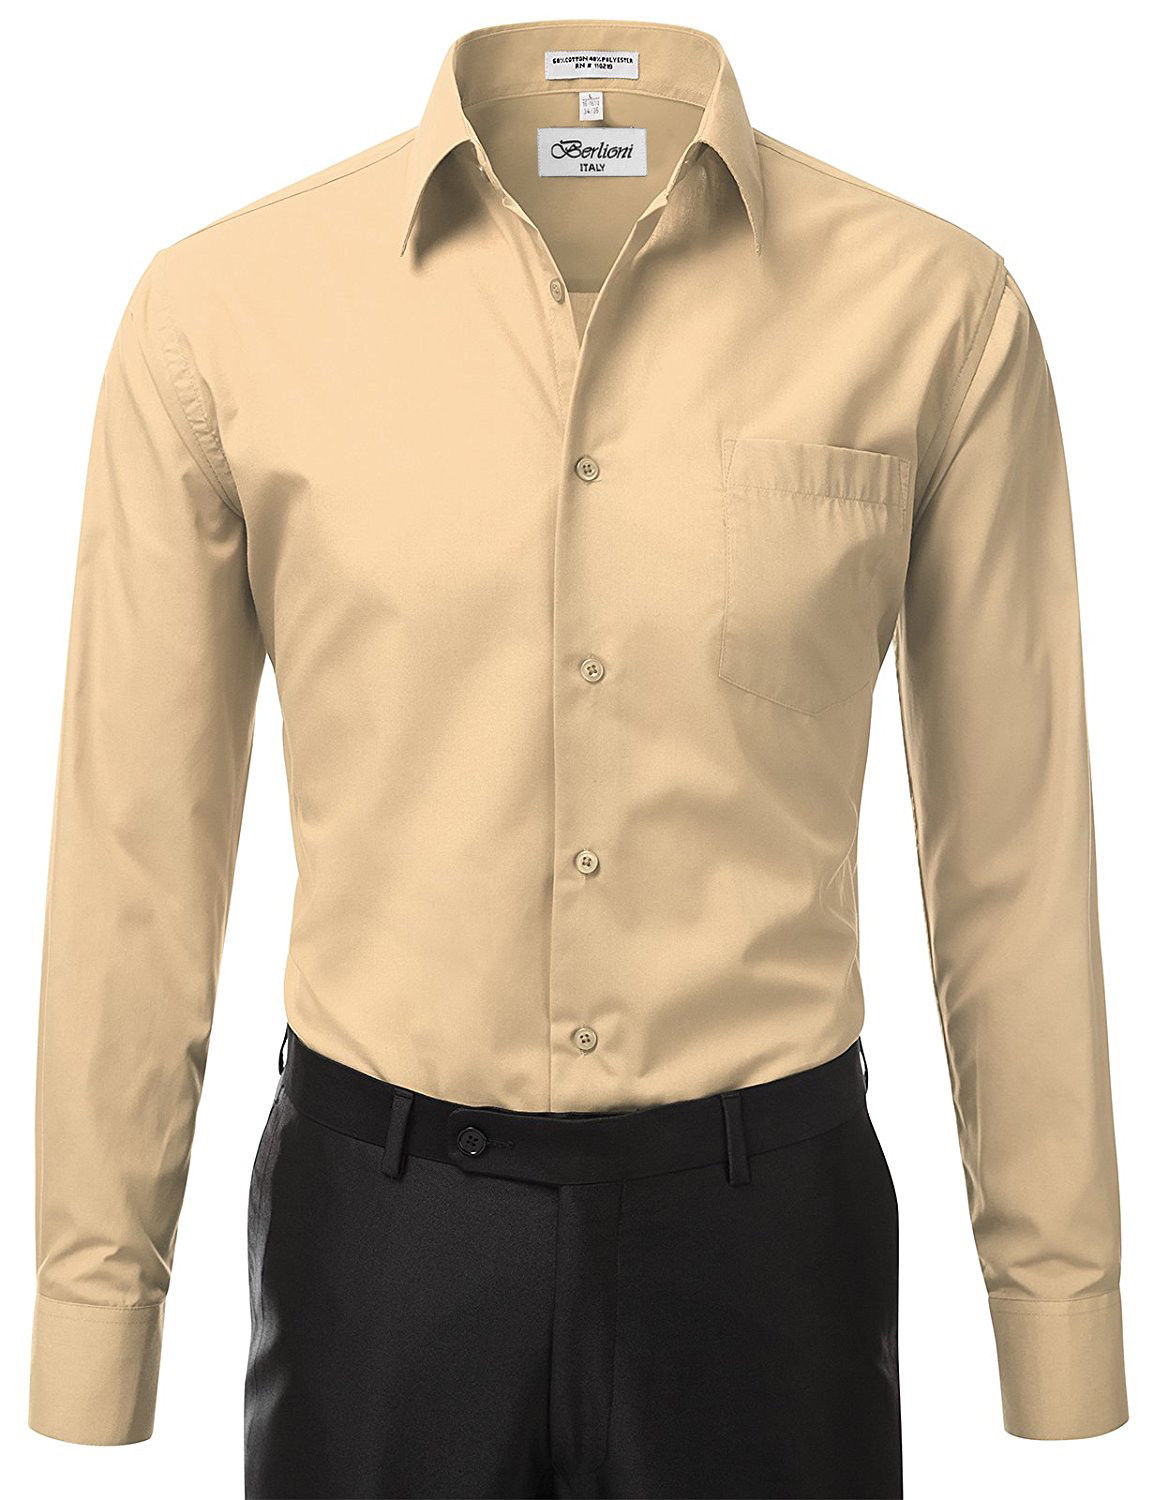 Berlioni-Italy-Men-039-s-Premium-Classic-French-Convertible-Cuff-Solid-Dress-Shirt thumbnail 32